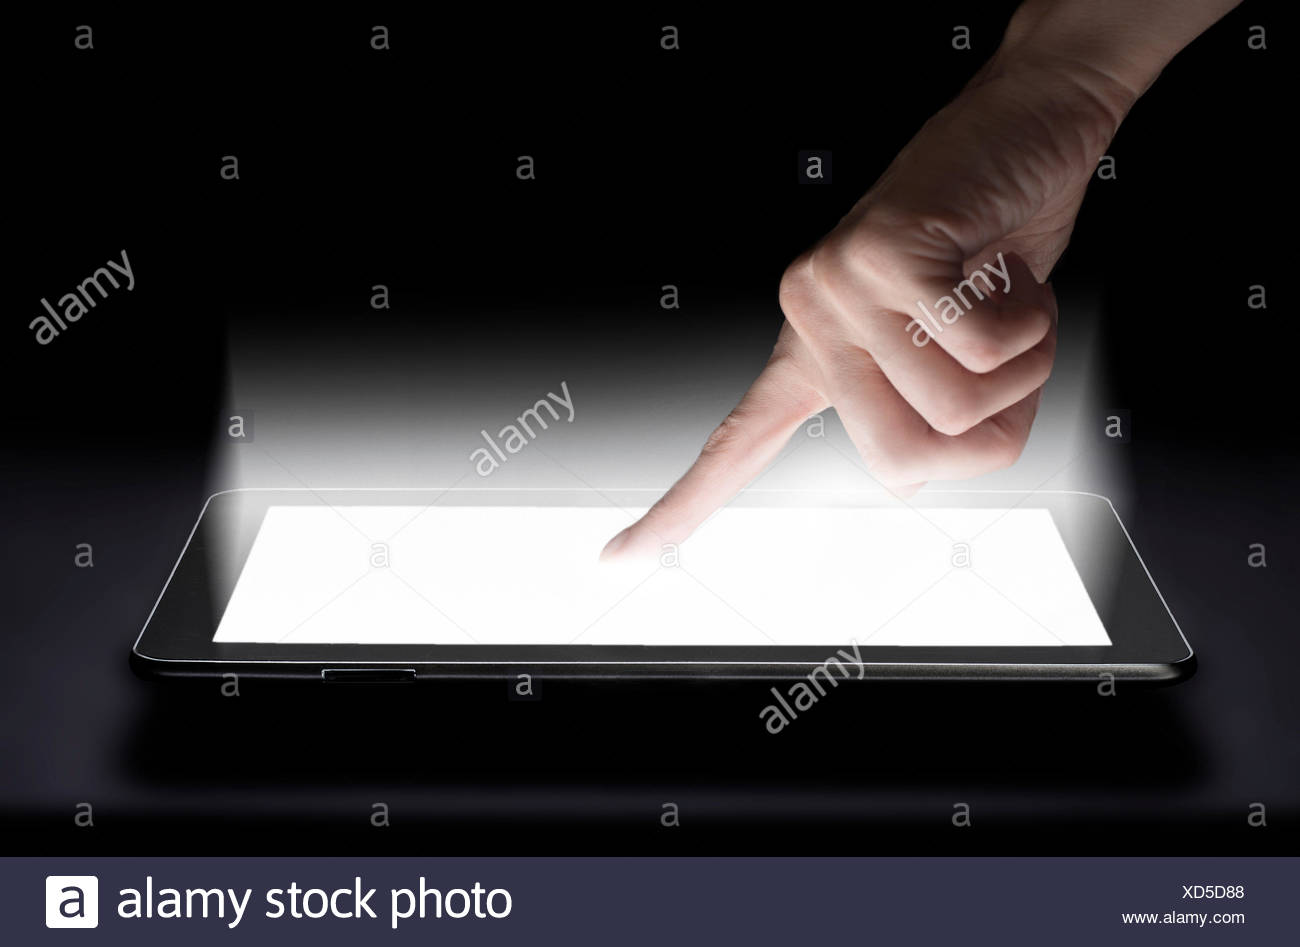 Woman touching digital tablet in studio - Stock Image